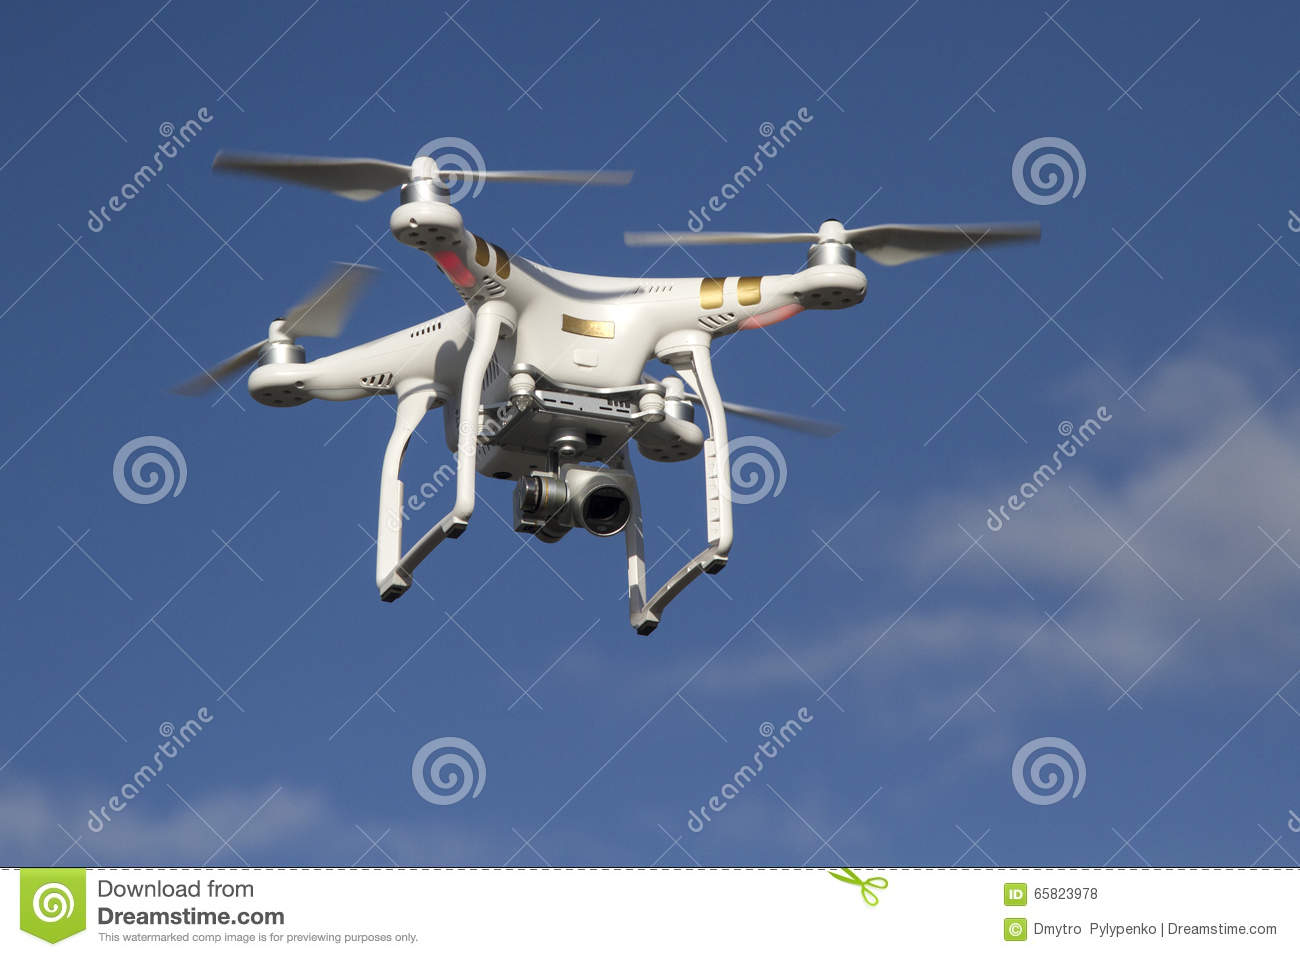 Small unmanned helicopter with a camera flying in the